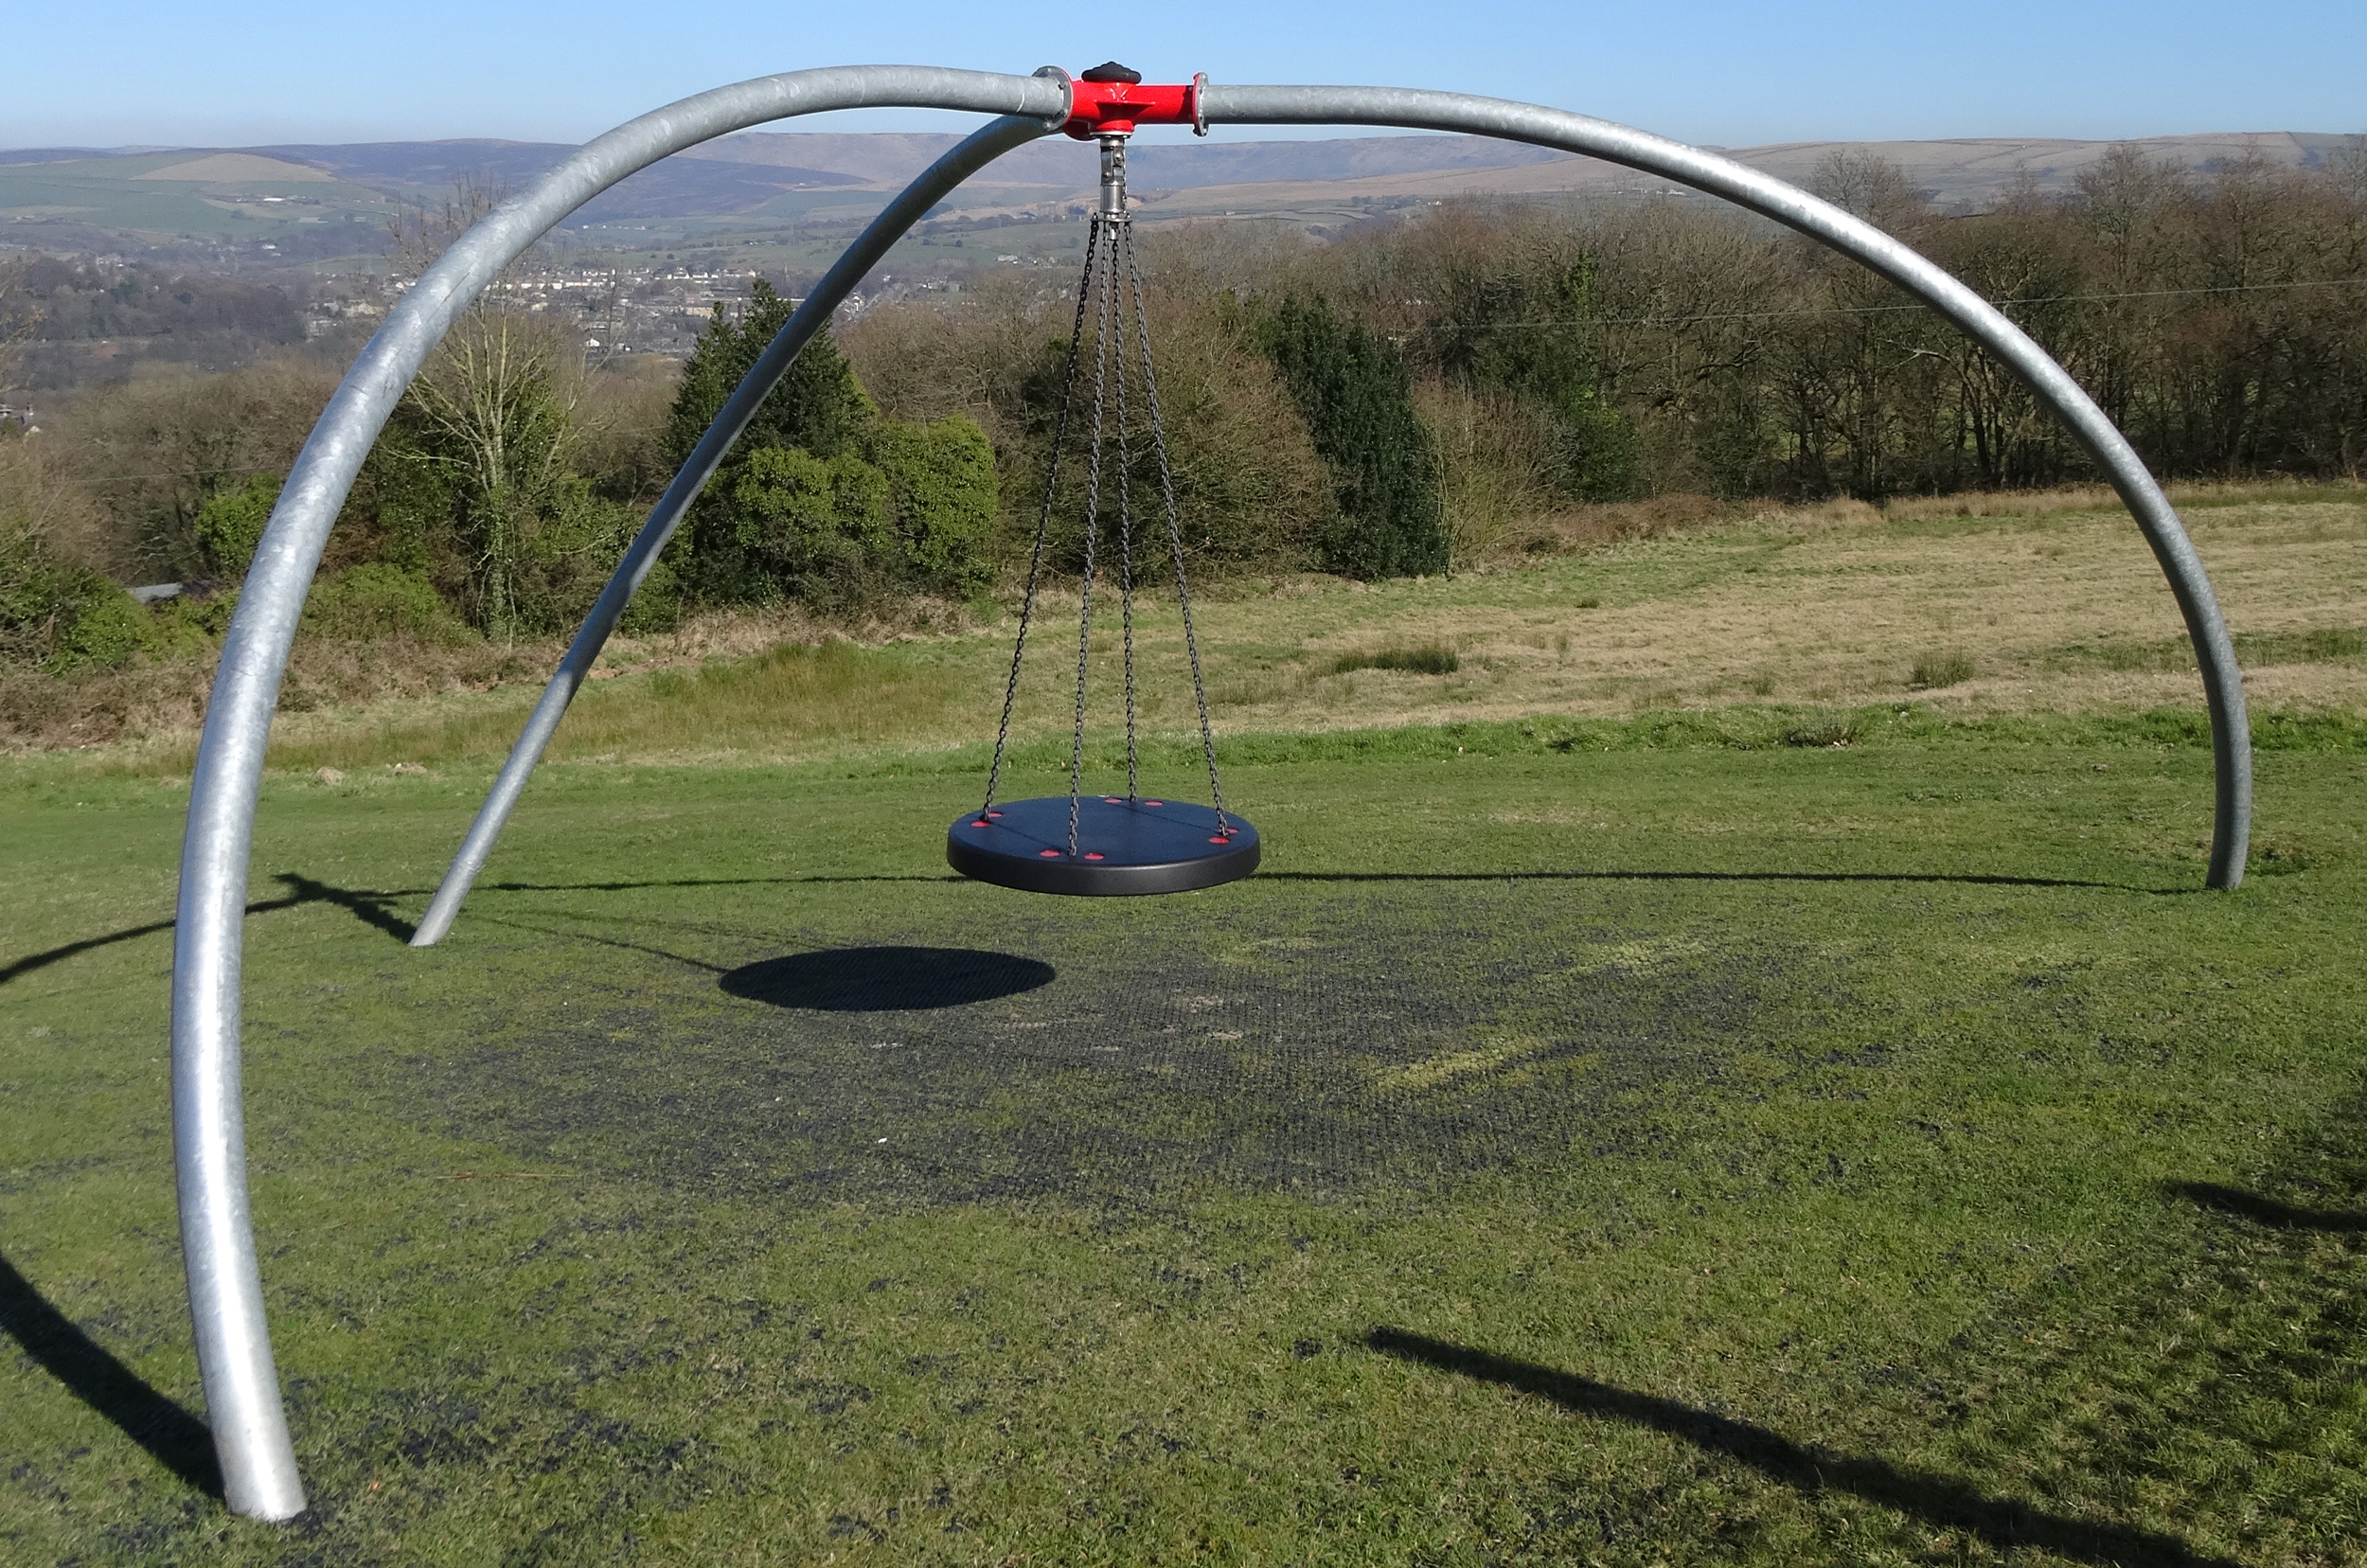 the inclusive single point swing has a flat swing hanging on chain from a central red pivot held by three curved silver legs, it is sat above grass with trees in the background